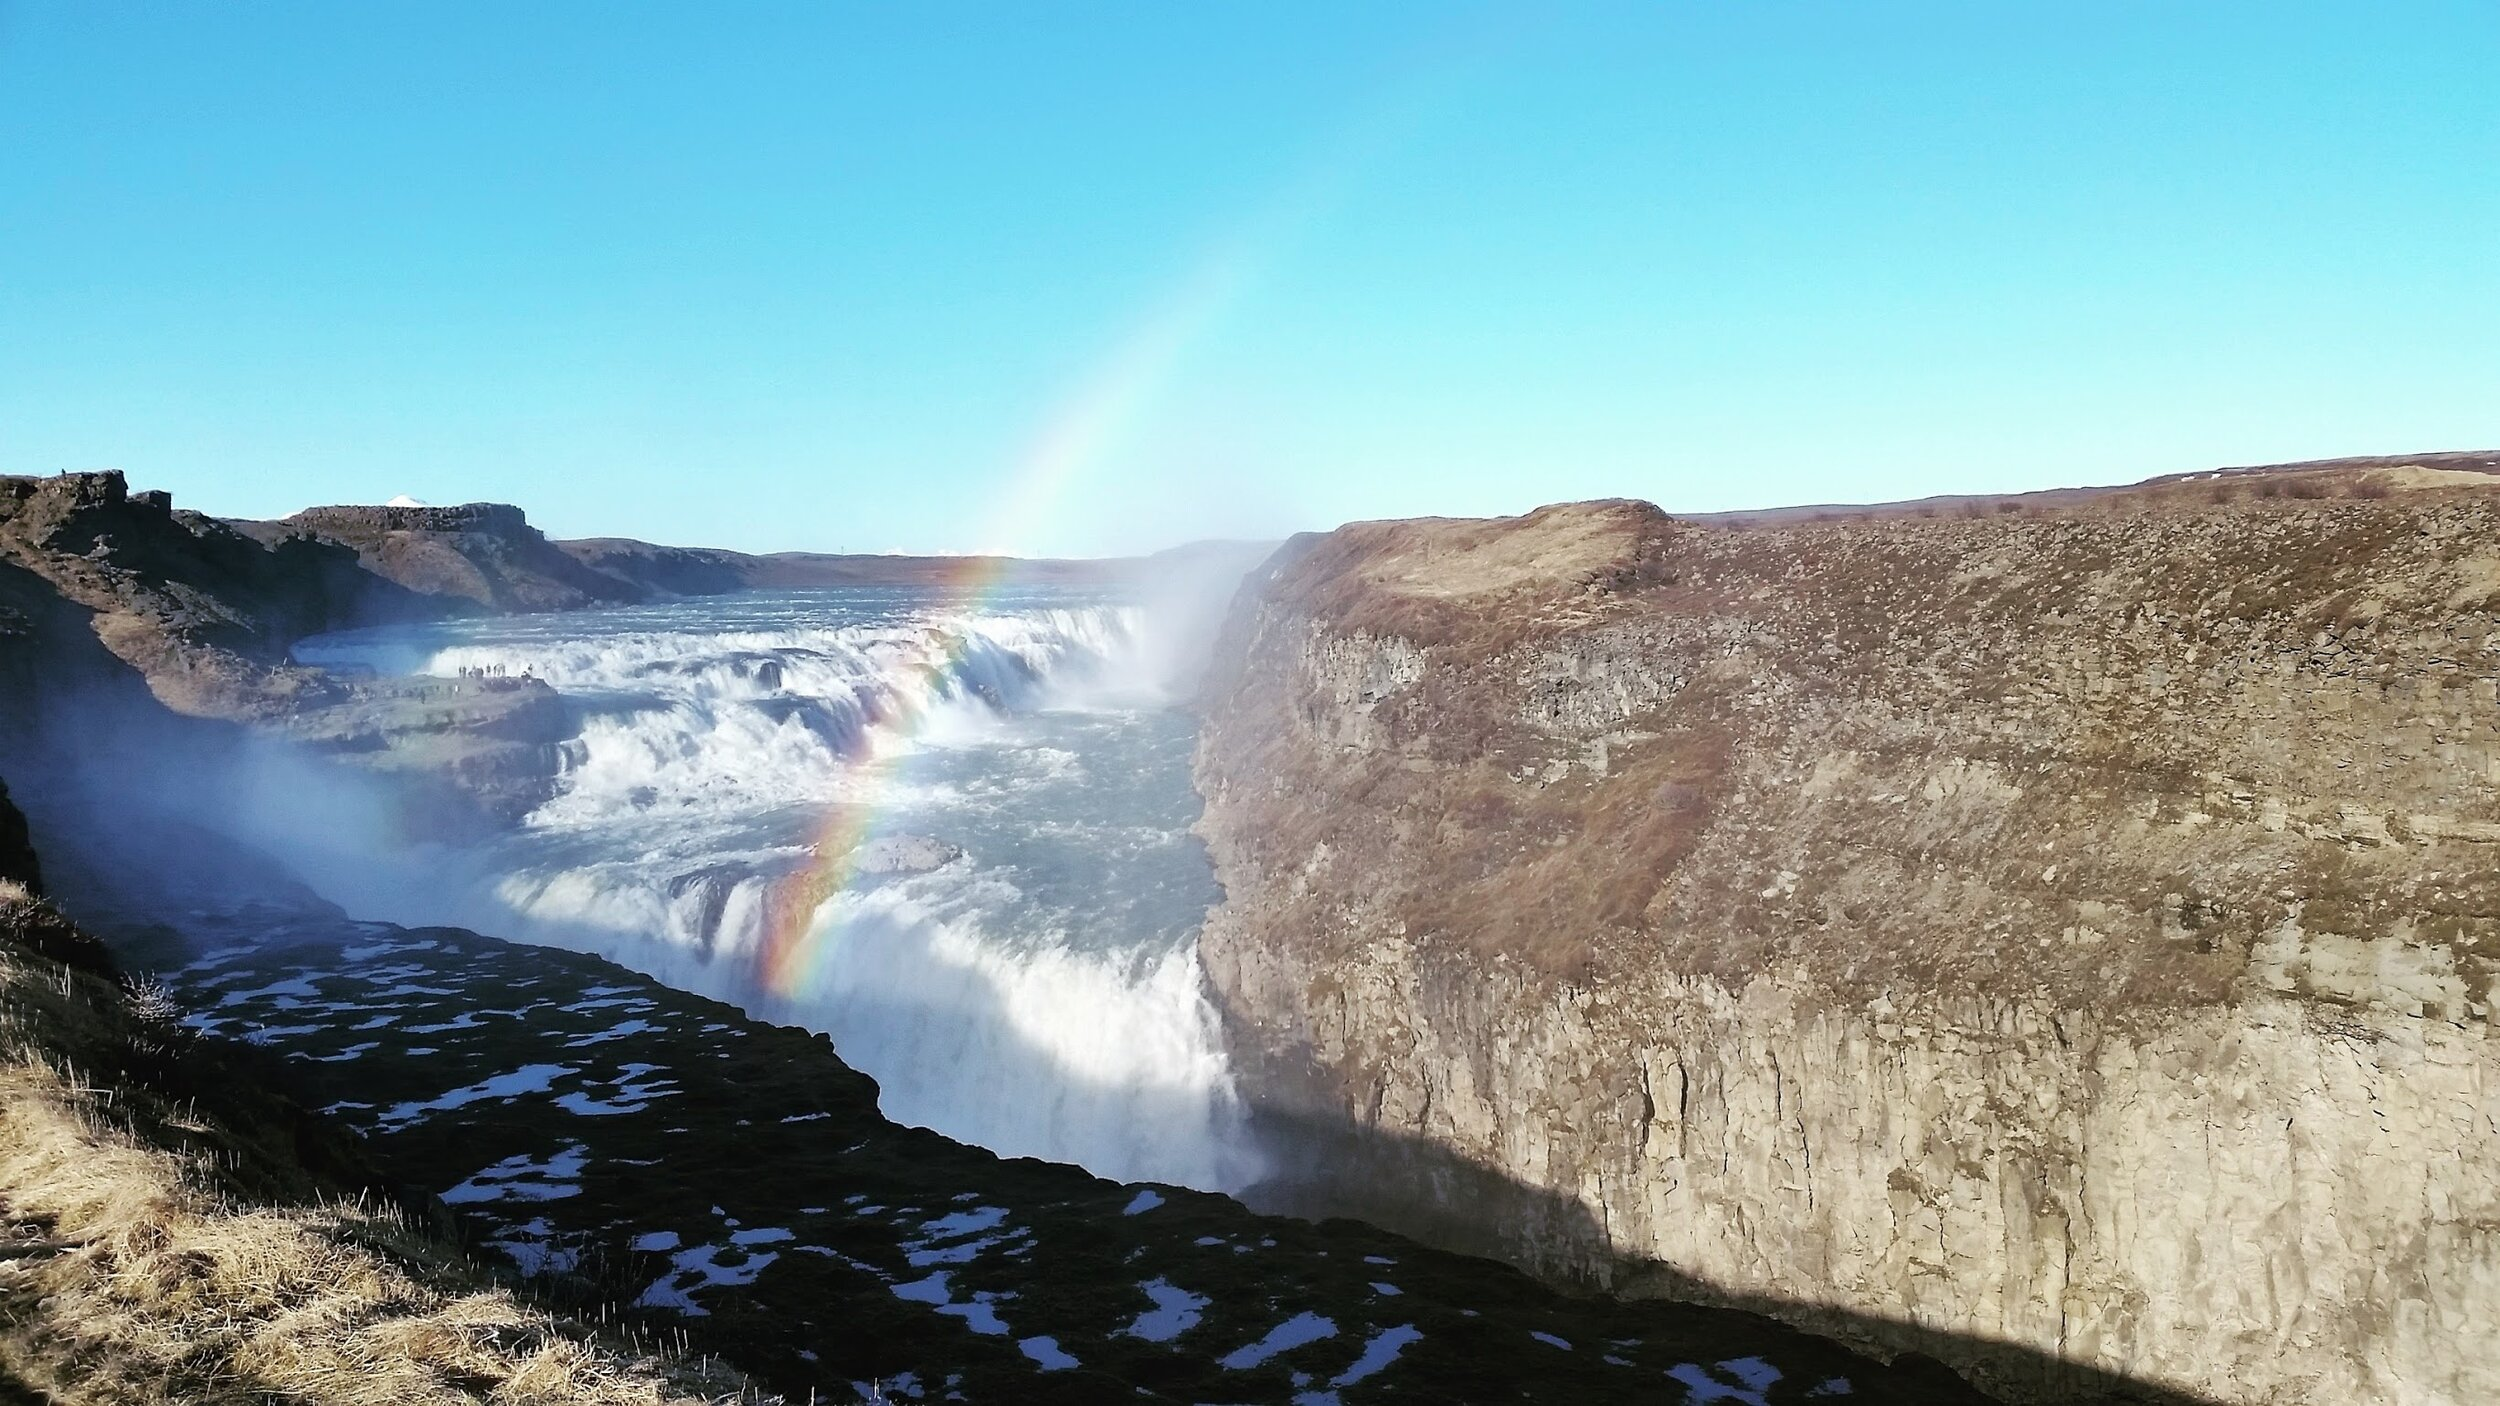 Rainbows over waterfalls, such as Gullfoss in Icleand, are magic!